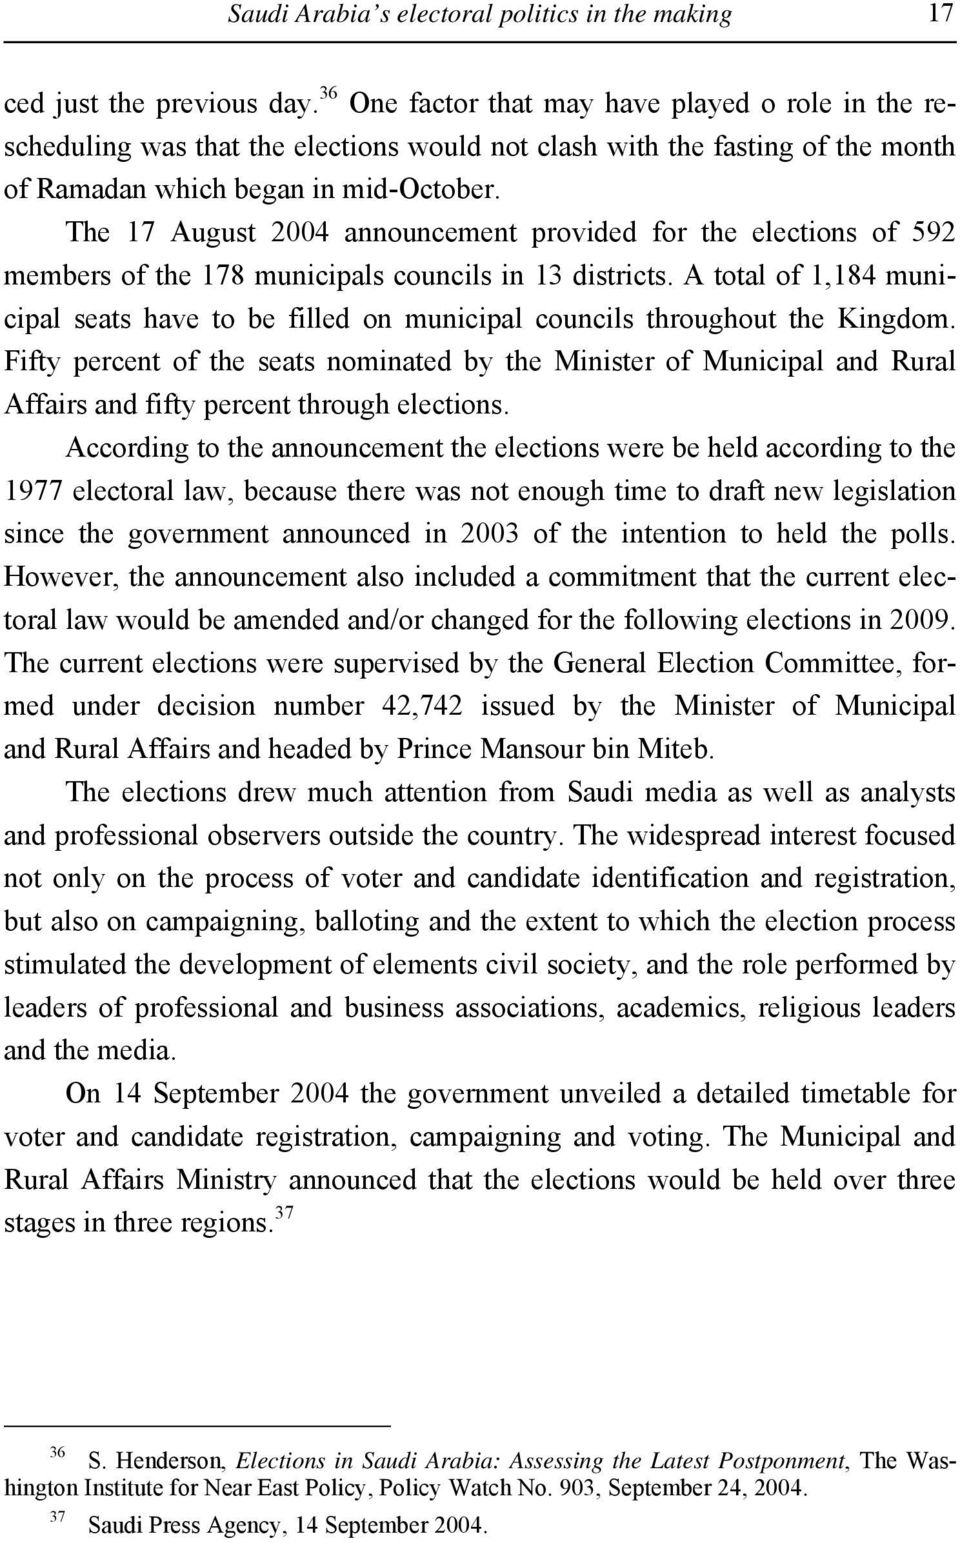 The 17 August 2004 announcement provided for the elections of 592 members of the 178 municipals councils in 13 districts.